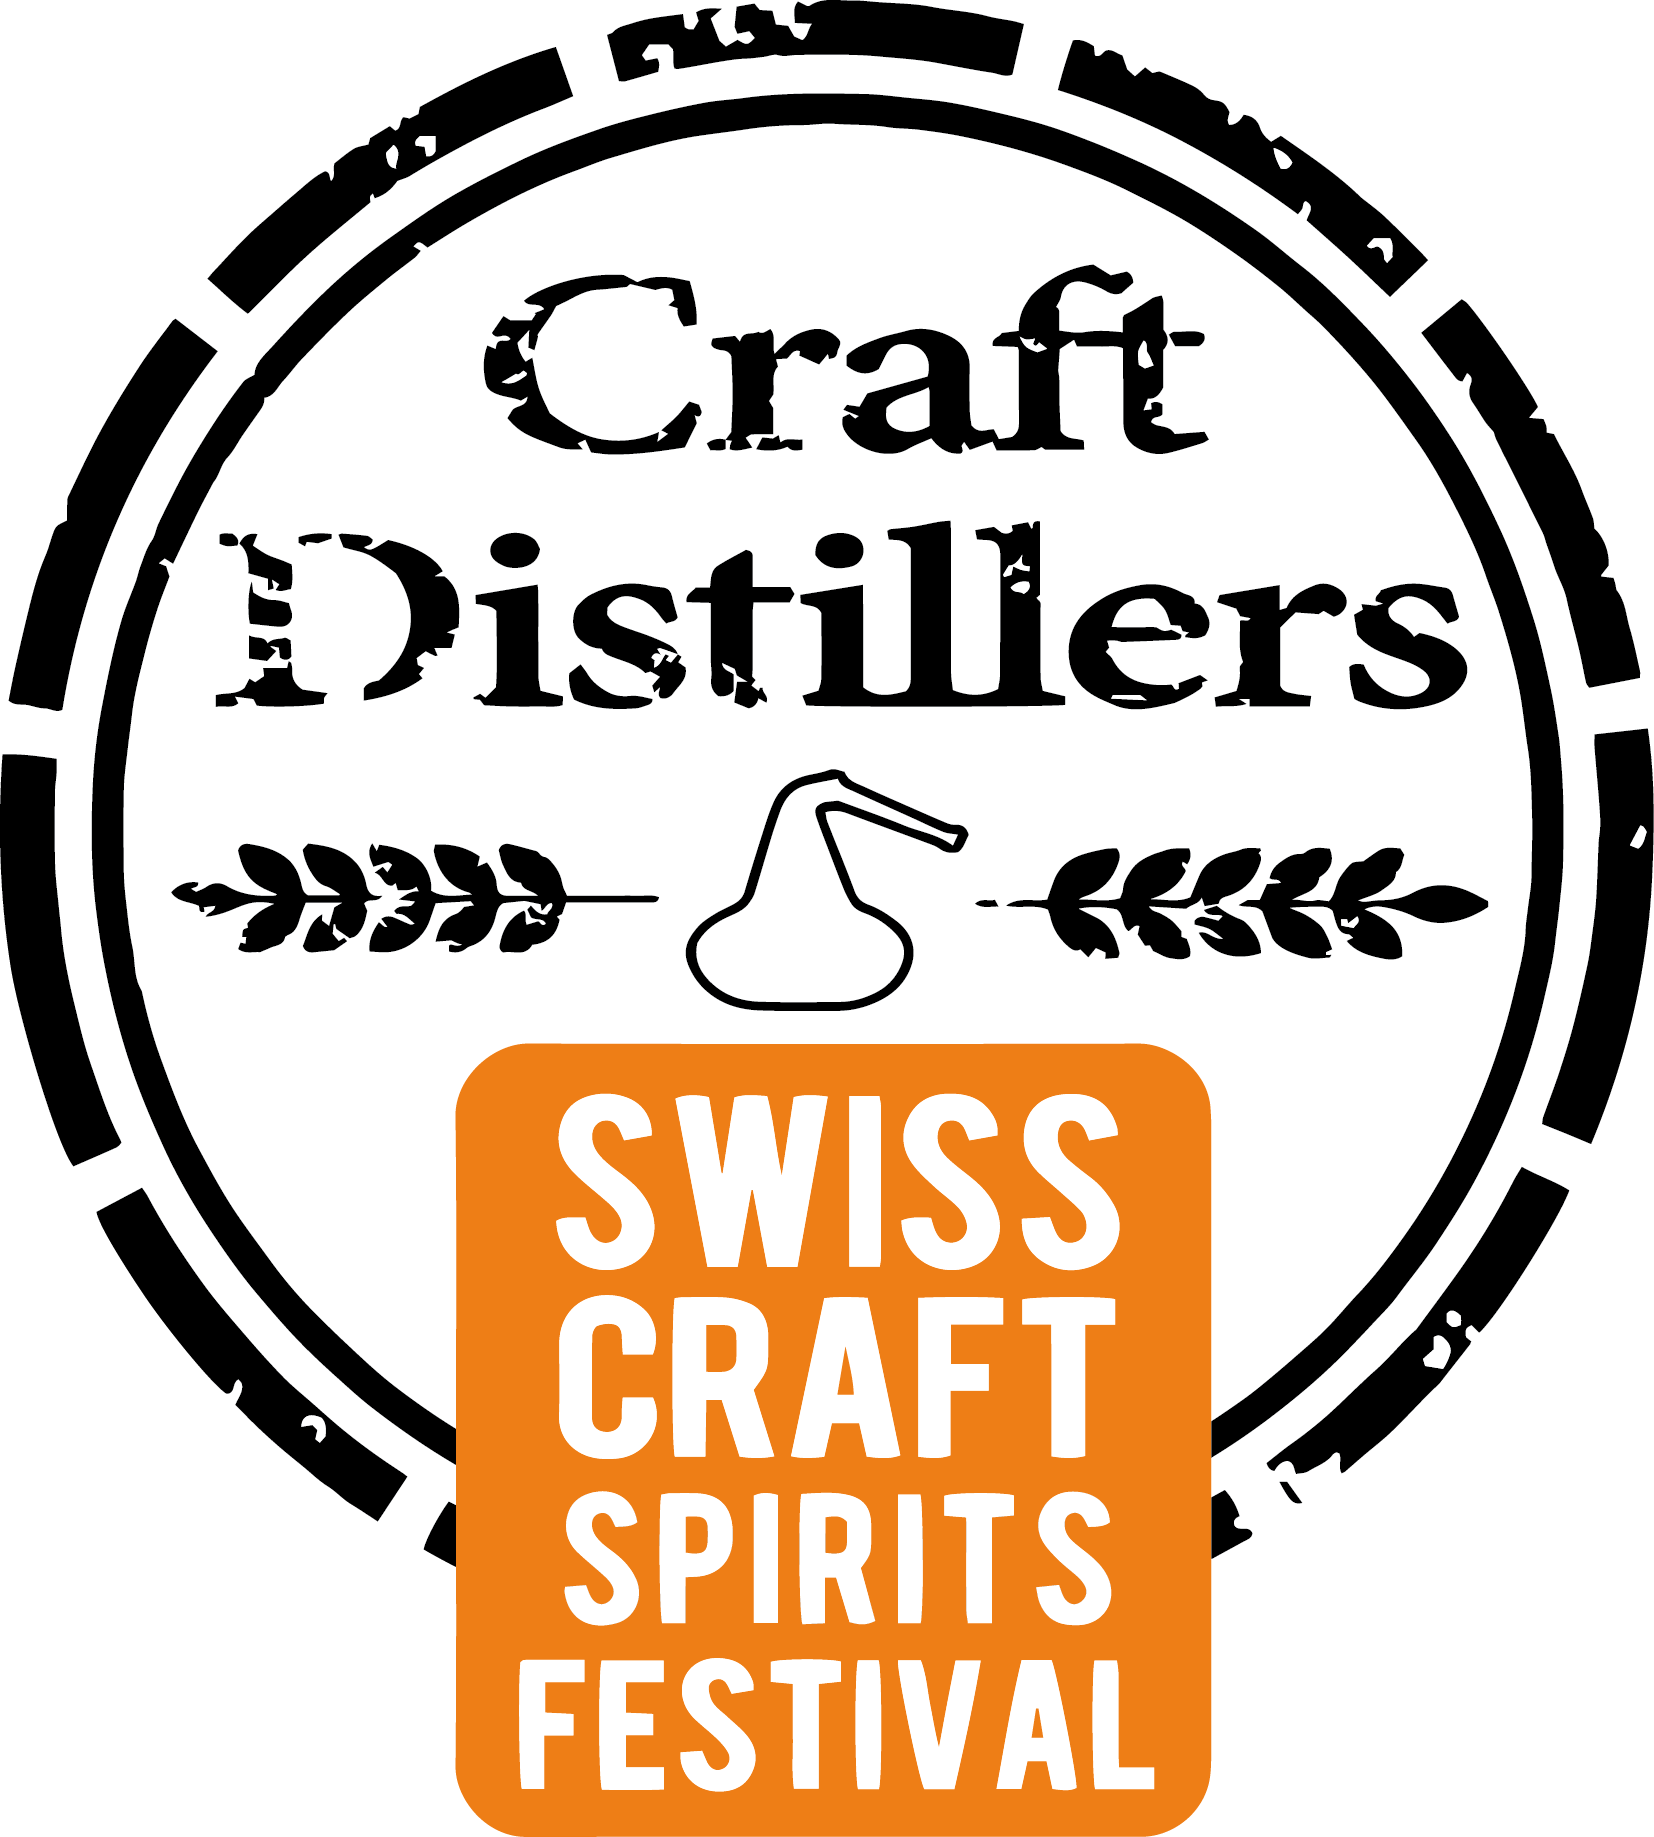 Swiss Craft Spirits Festival